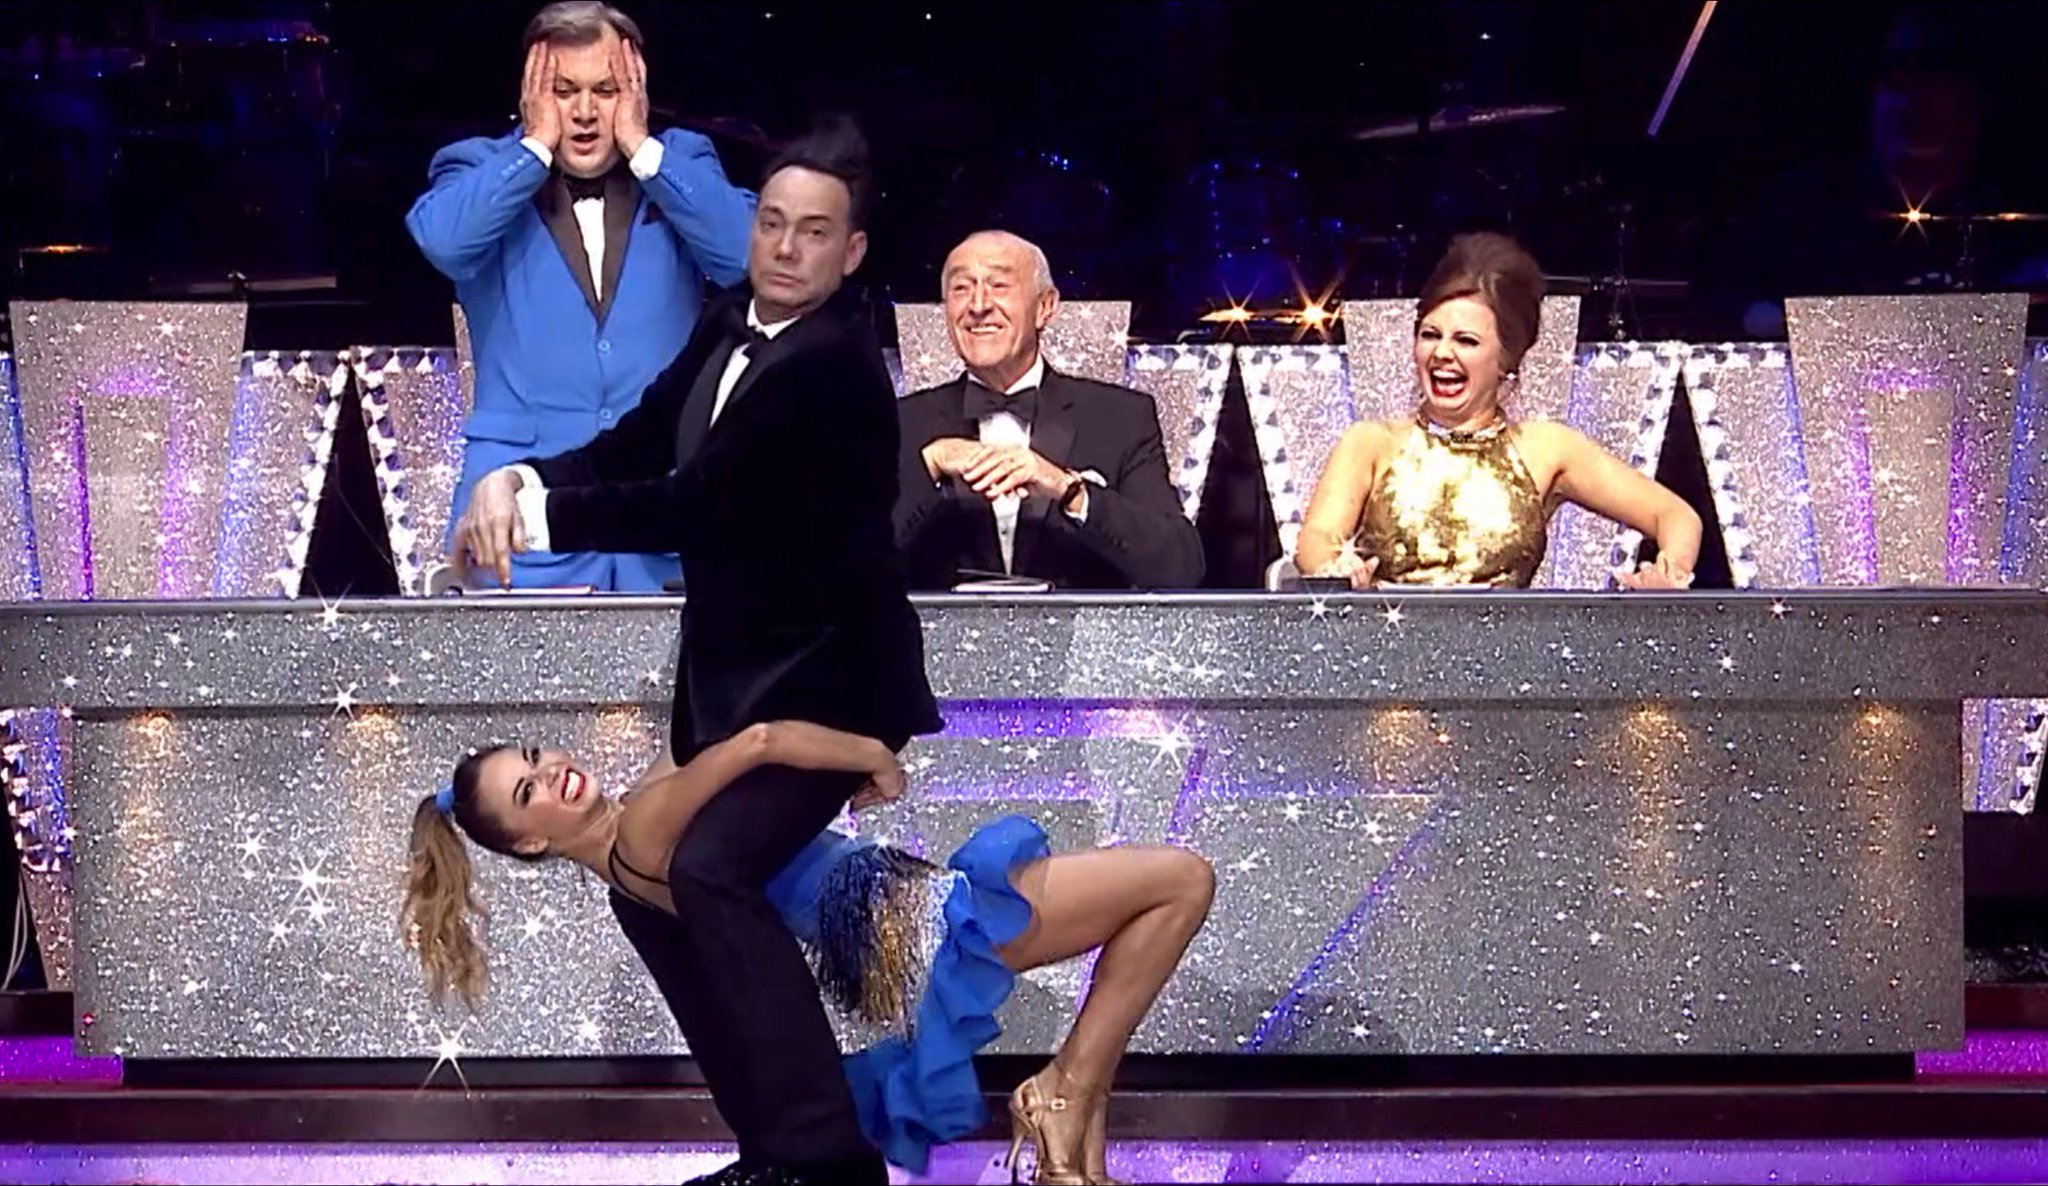 RT @Richardbbc: Oh yes he did, @CraigRevHorwood tried some Gangnam Style with @Mrs_katjones https://t.co/l8y7Jicyjr